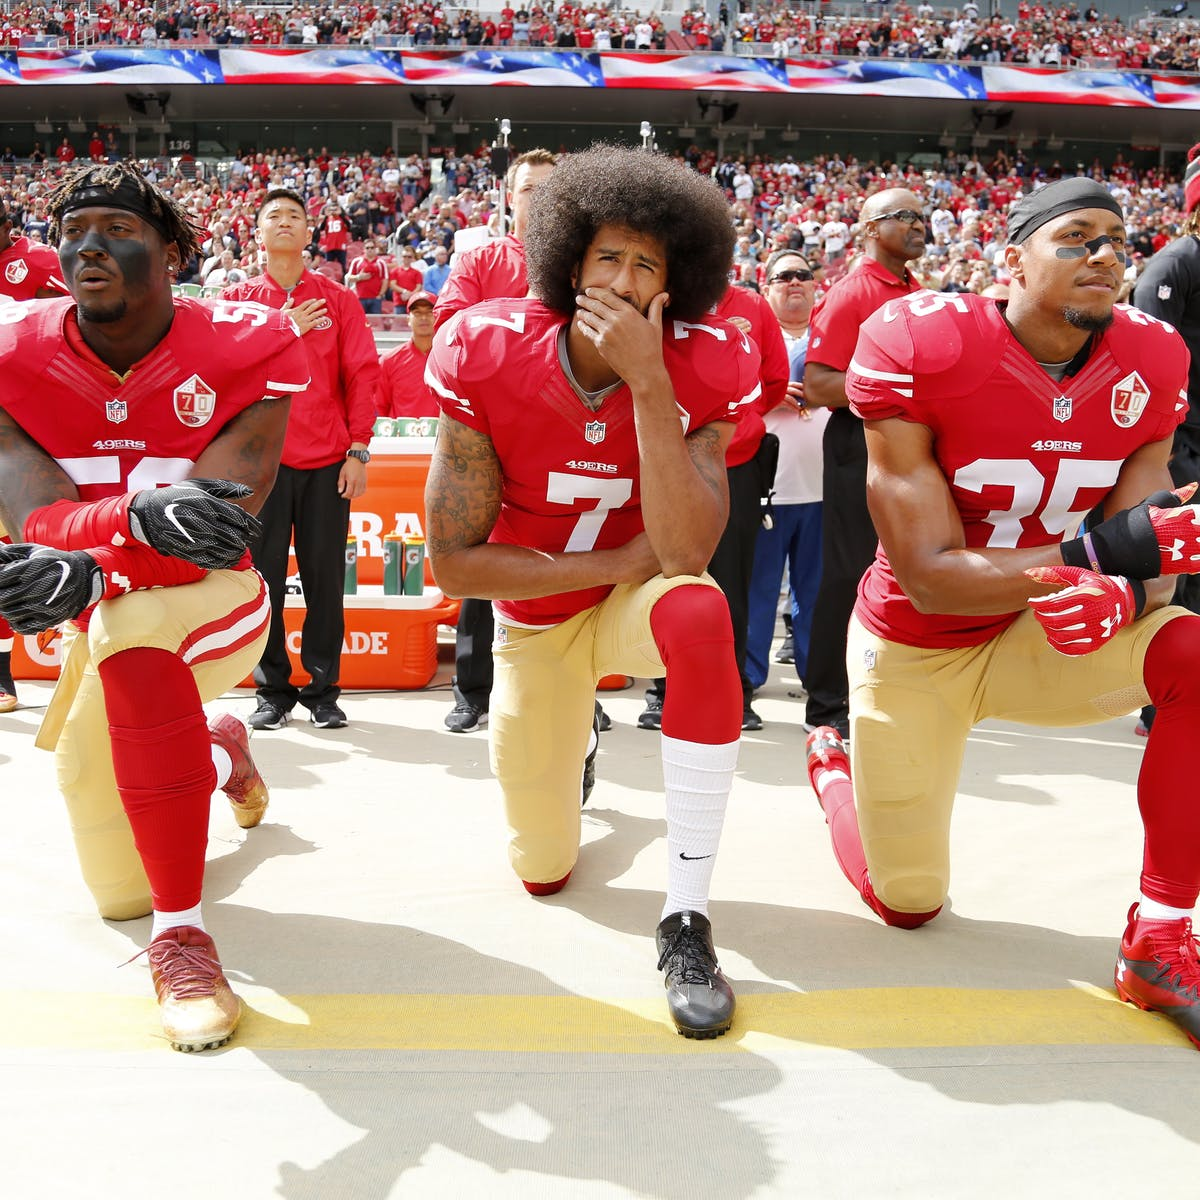 Nike S Courageous New Ad Campaign Mixing Racial Politics With Sport Will Be Vindicated